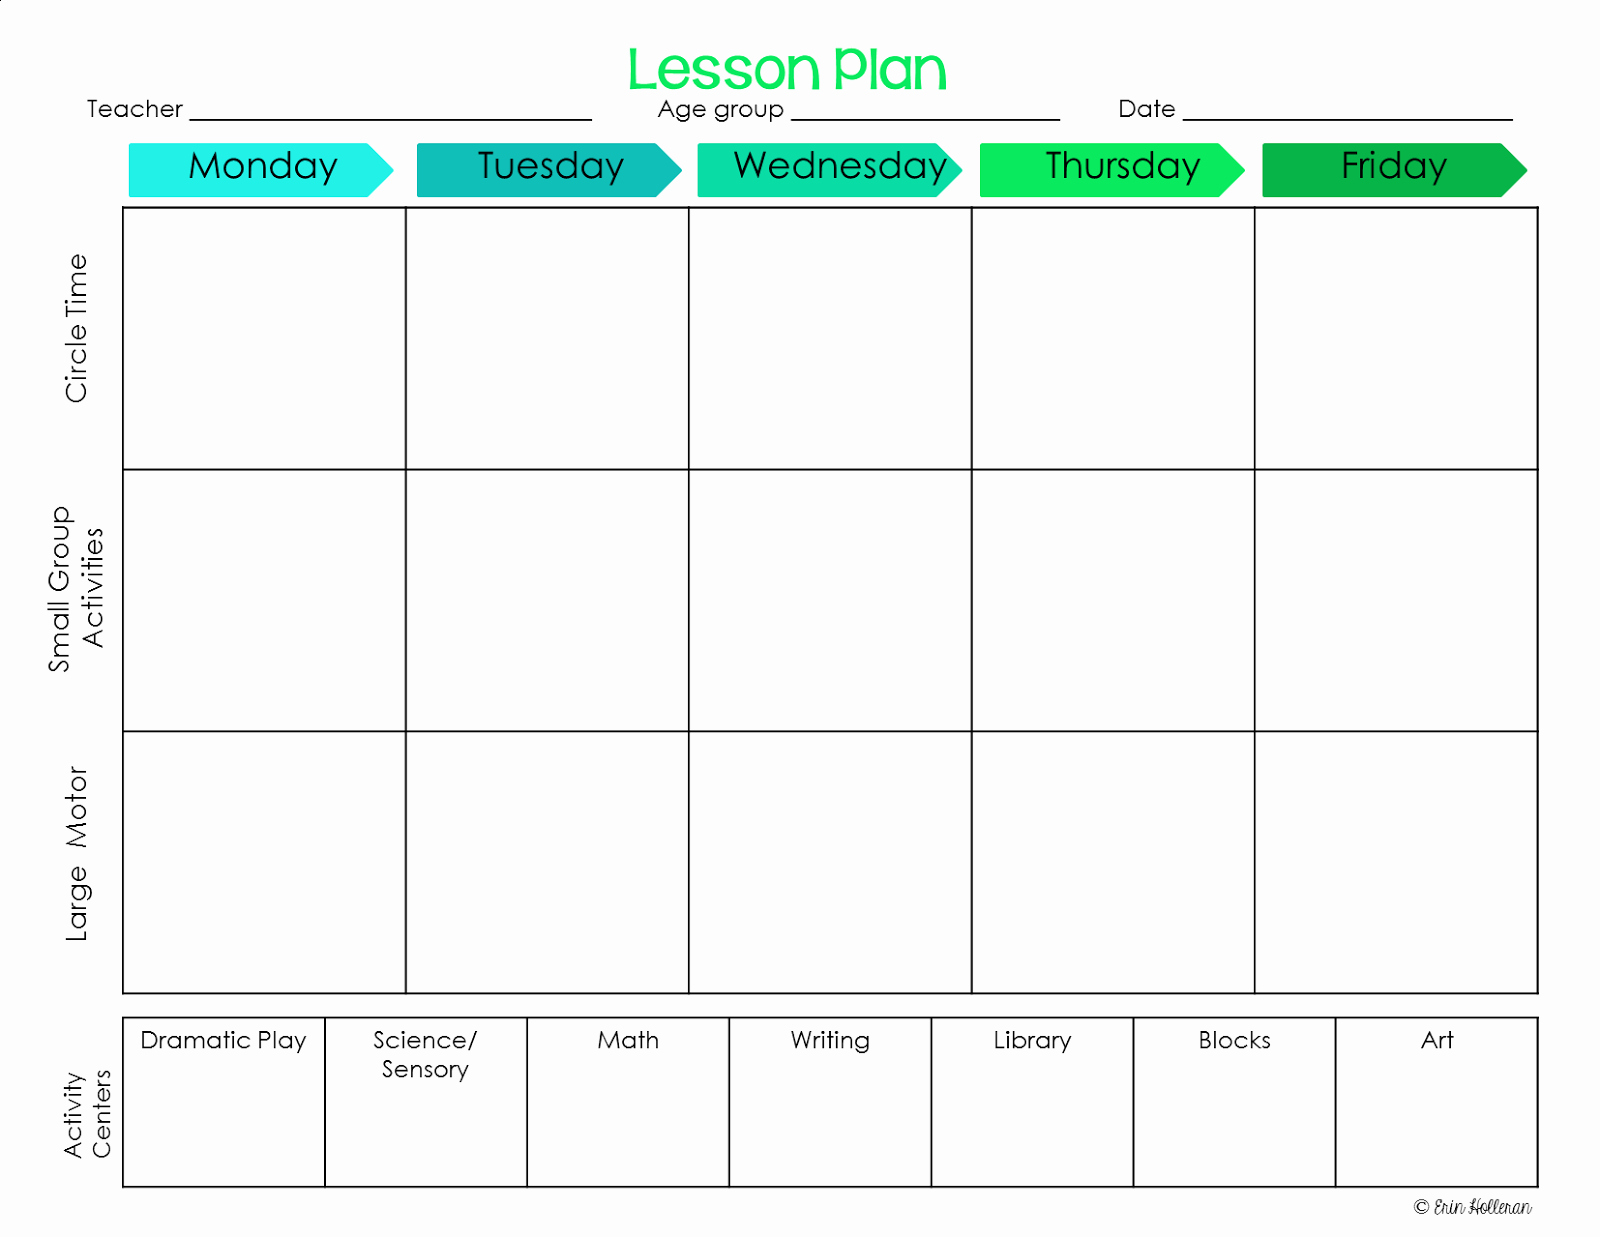 Lesson Plans Template Free Fresh Preschool Ponderings Make Your Lesson Plans Work for You